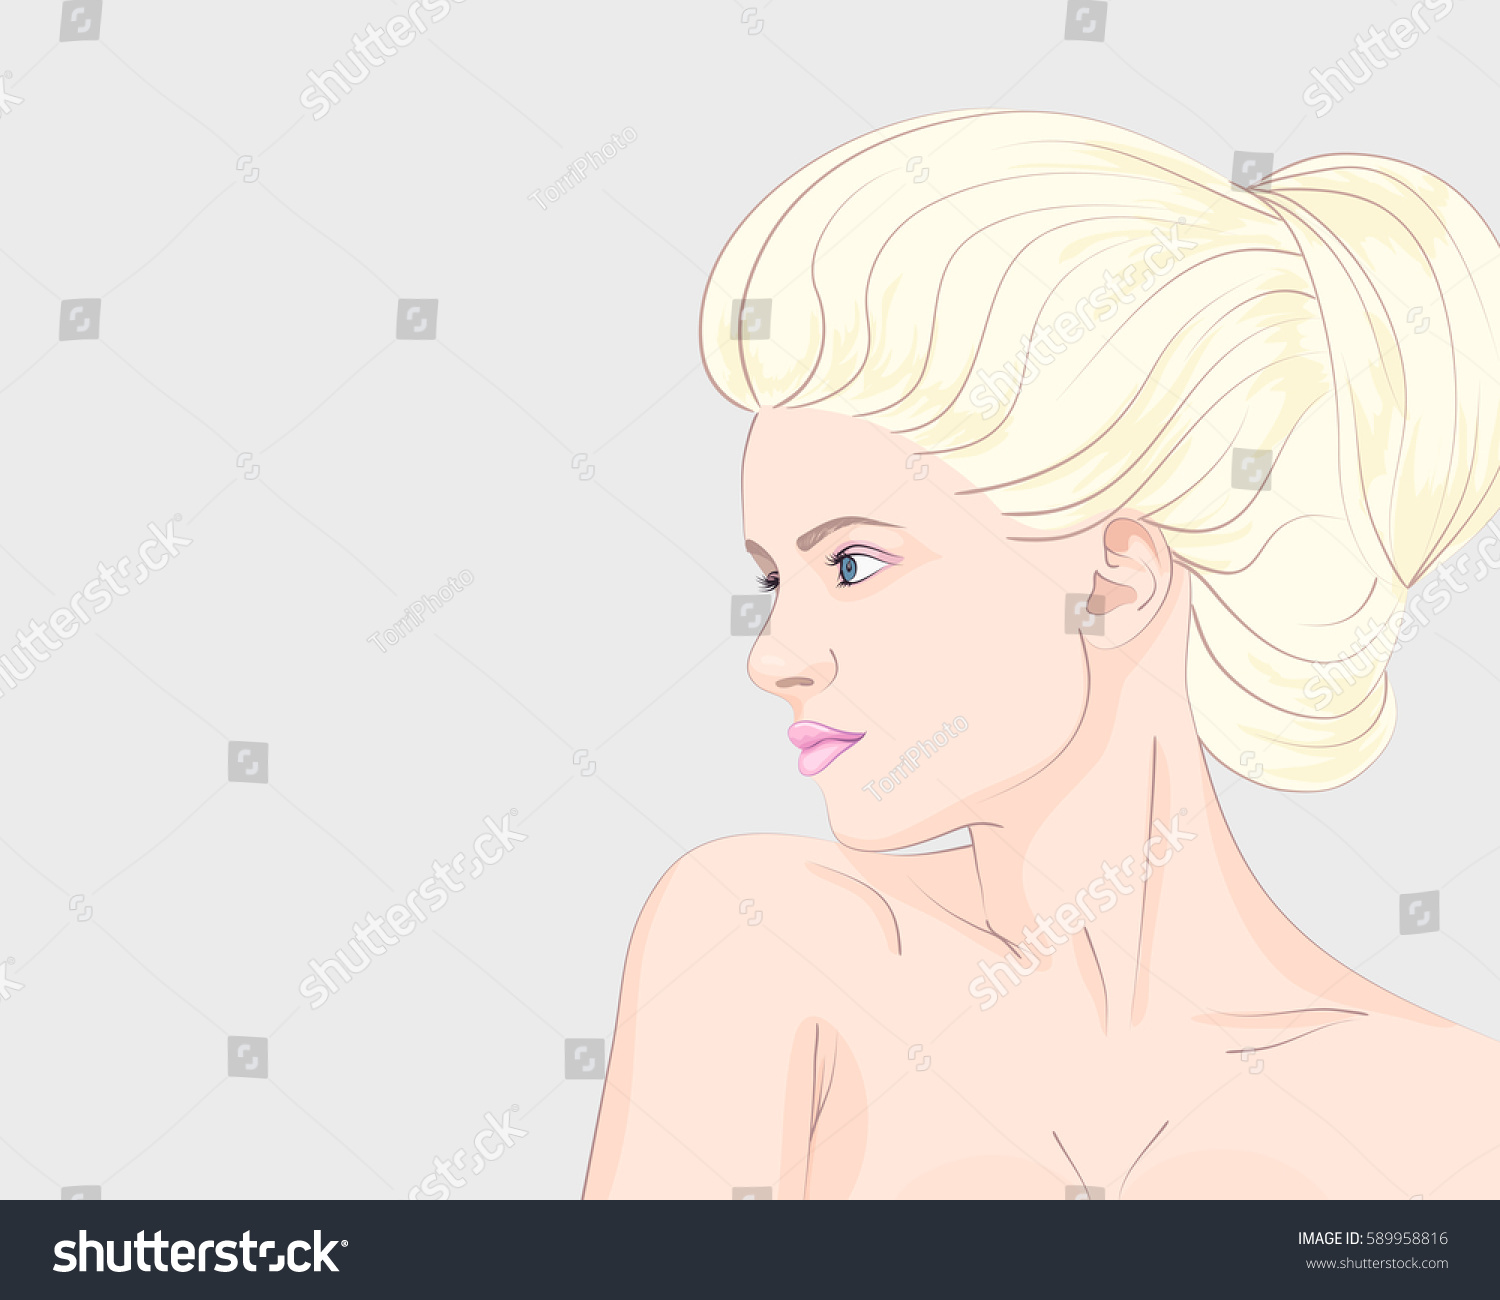 https://www.shutterstock.com/image-vector/beautiful-blonde-woman-bun-hairstyle-vector-589958816